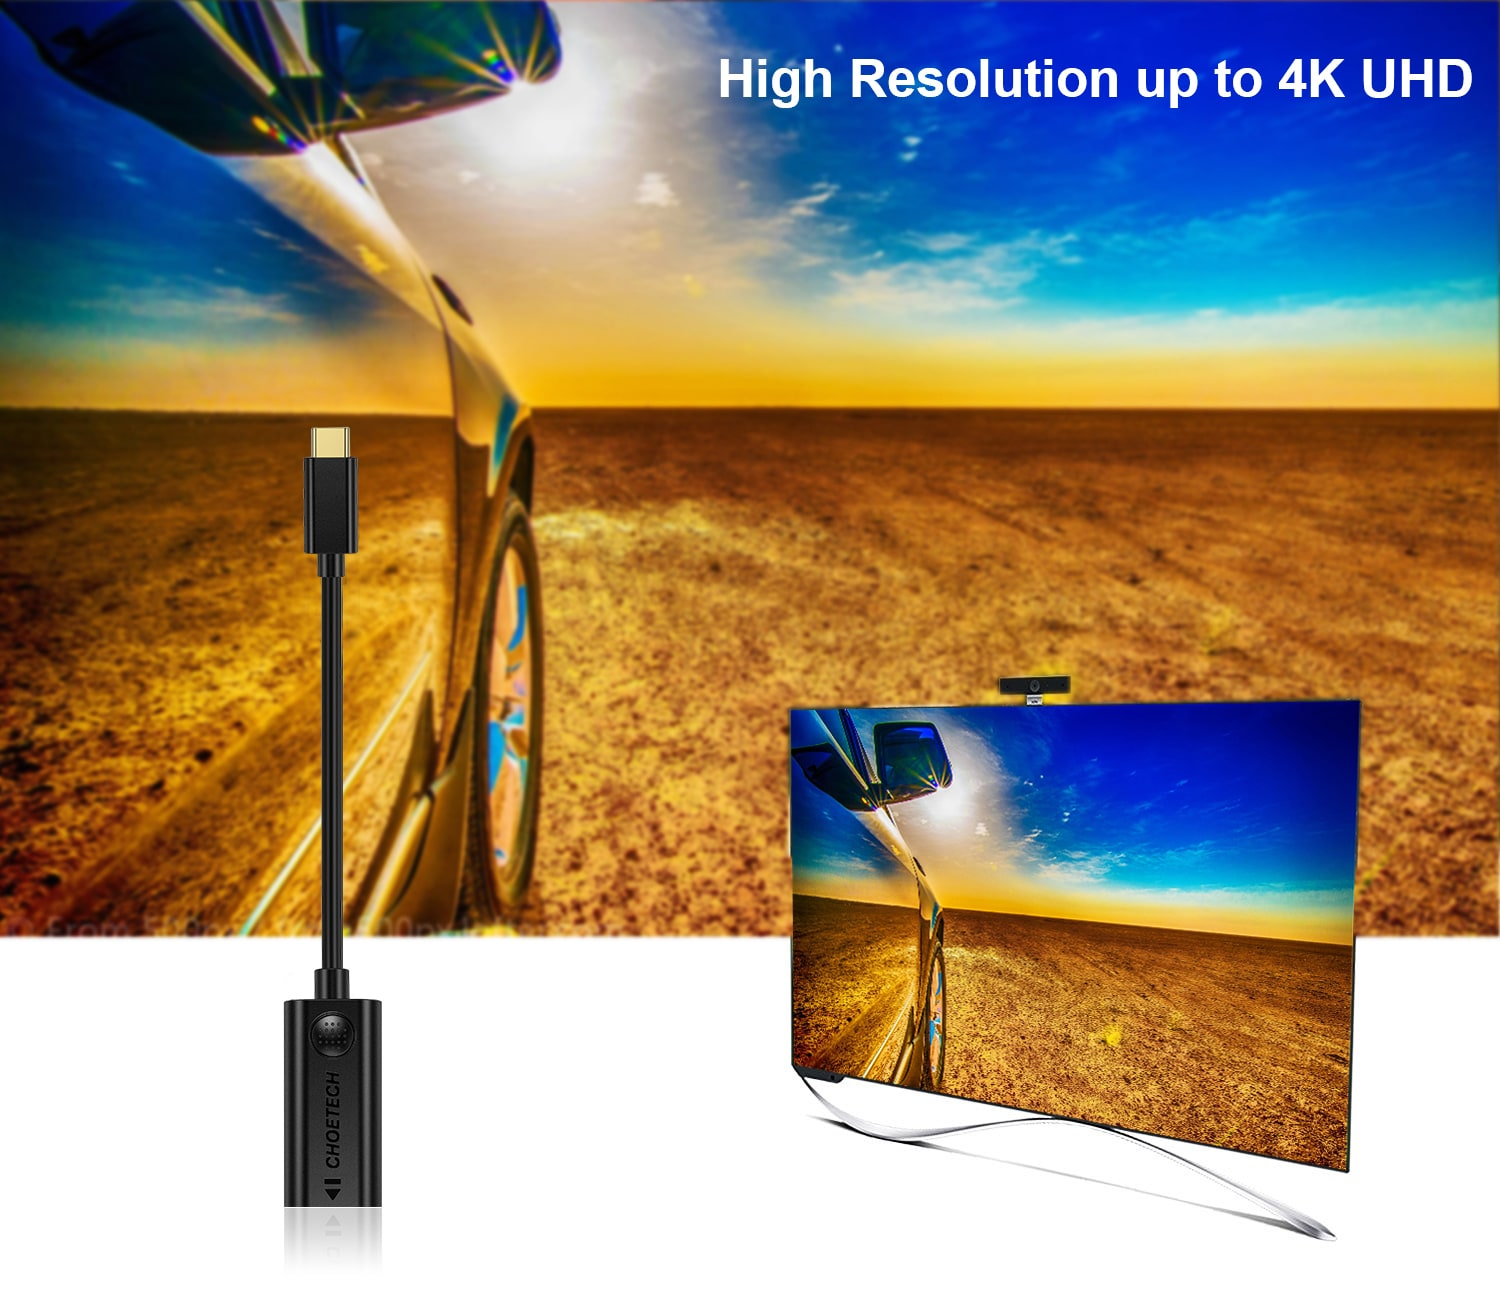 CHOETECH USB C to HDMI Adapter 4K@30Hz Thunderbolt 3 Compatible For Samsung S8/S9 Plus, MacBook Pro 2017 - 3